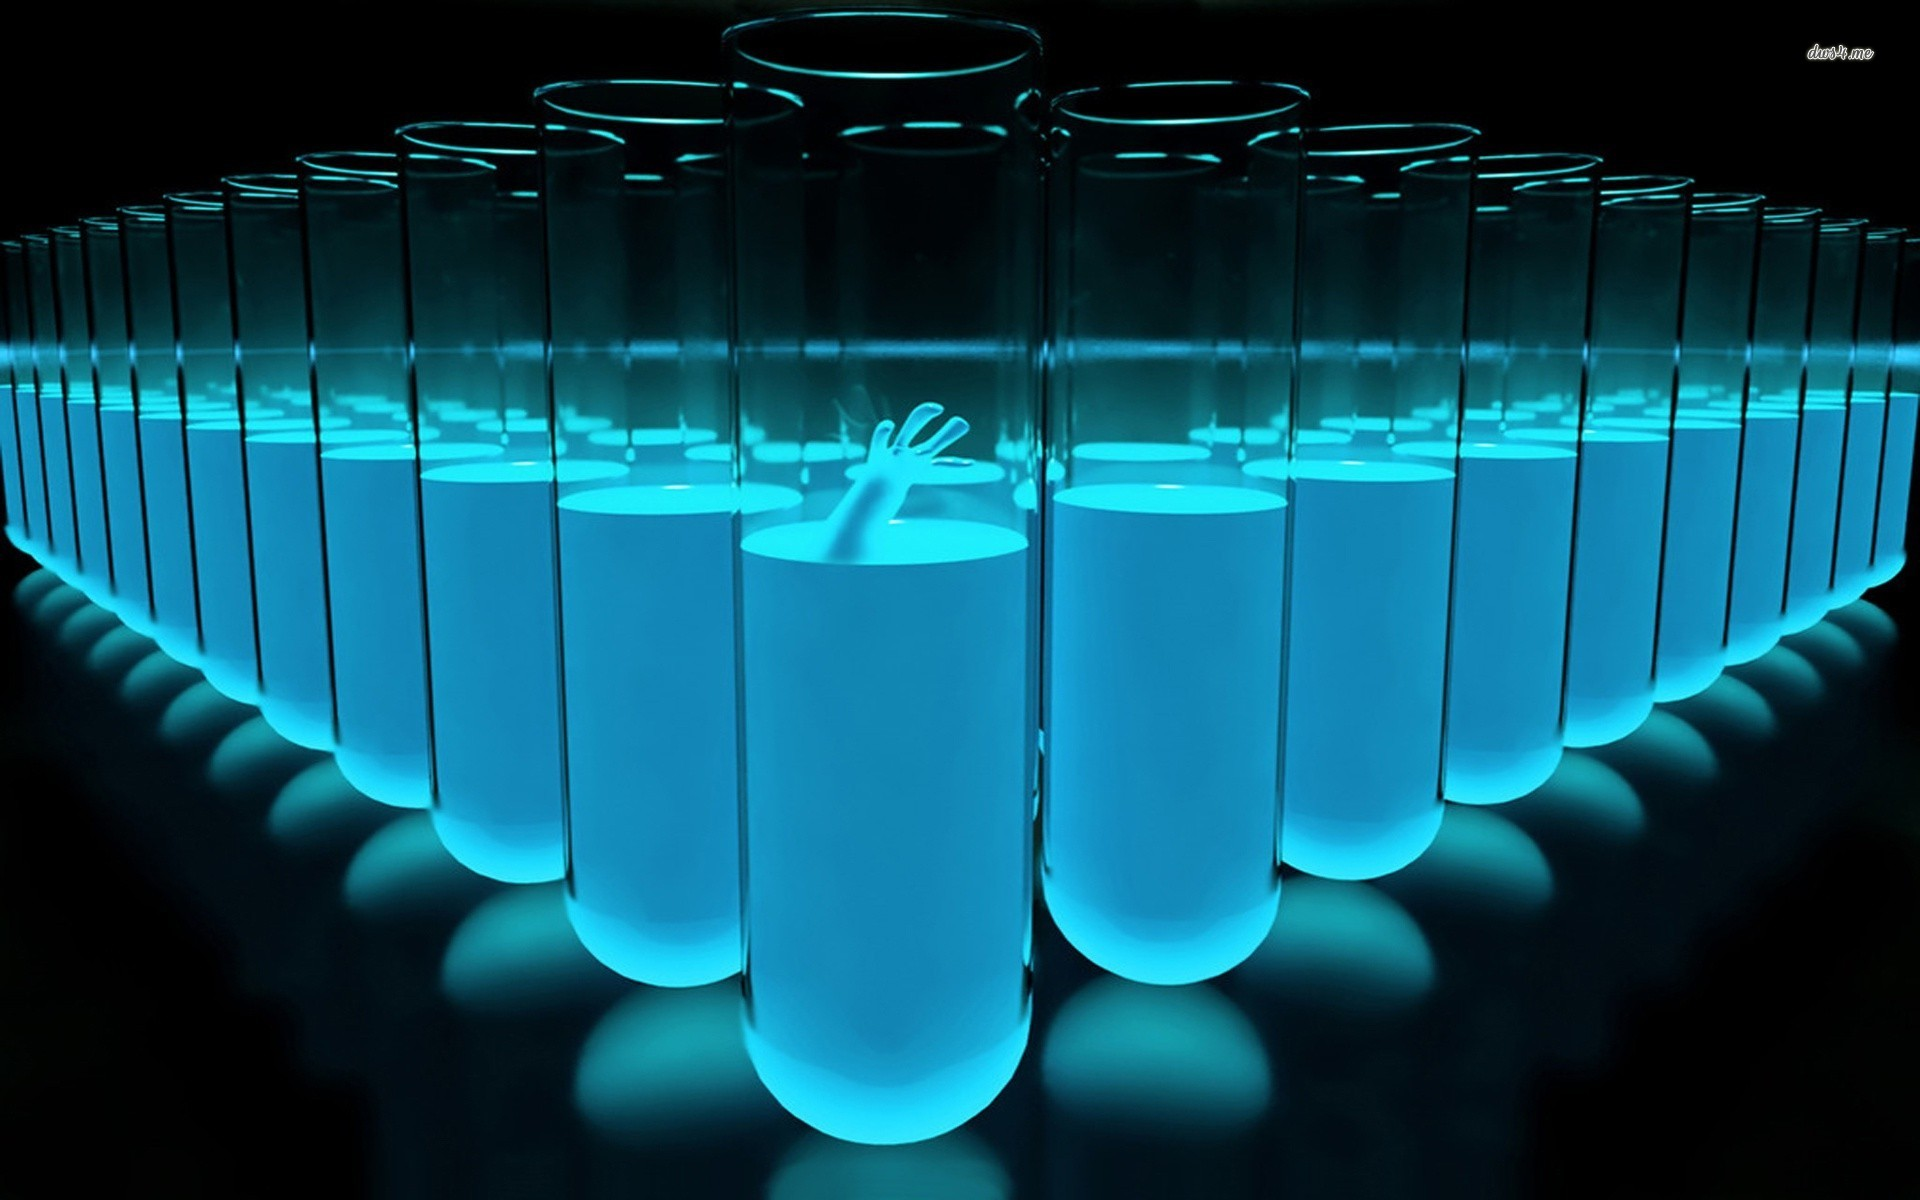 Blue Liquid In Vials - Blue Liquid In Vials